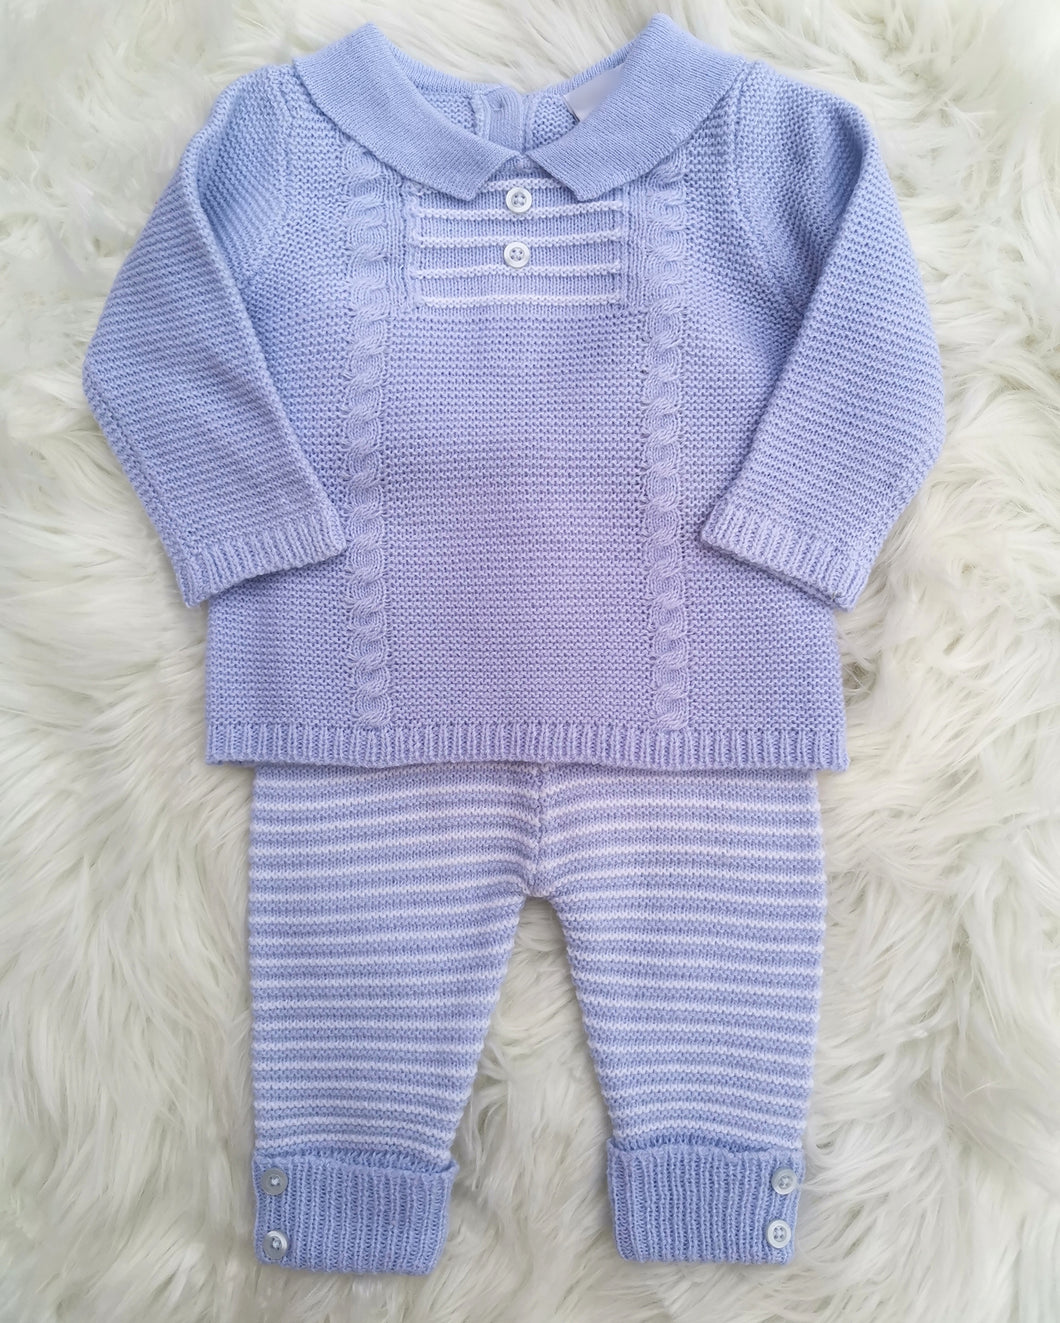 Baby Boys Cable Knit Outfit